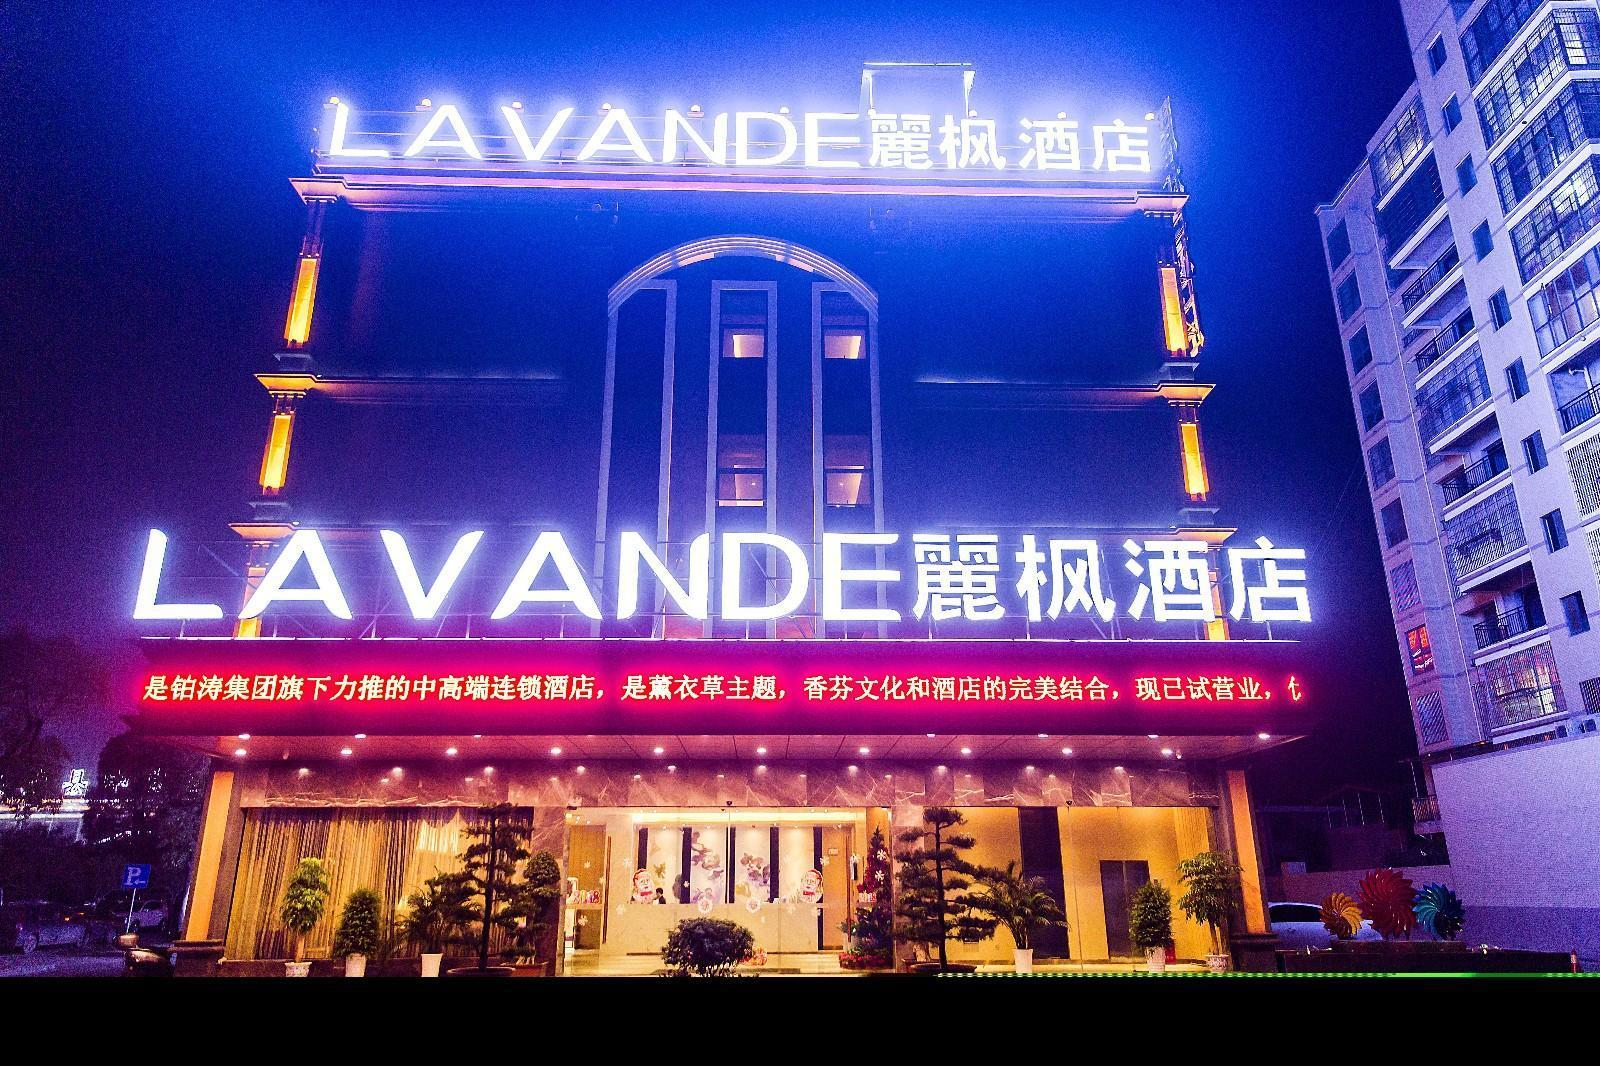 Lavande Hotels·Changde Anxiang, Changde